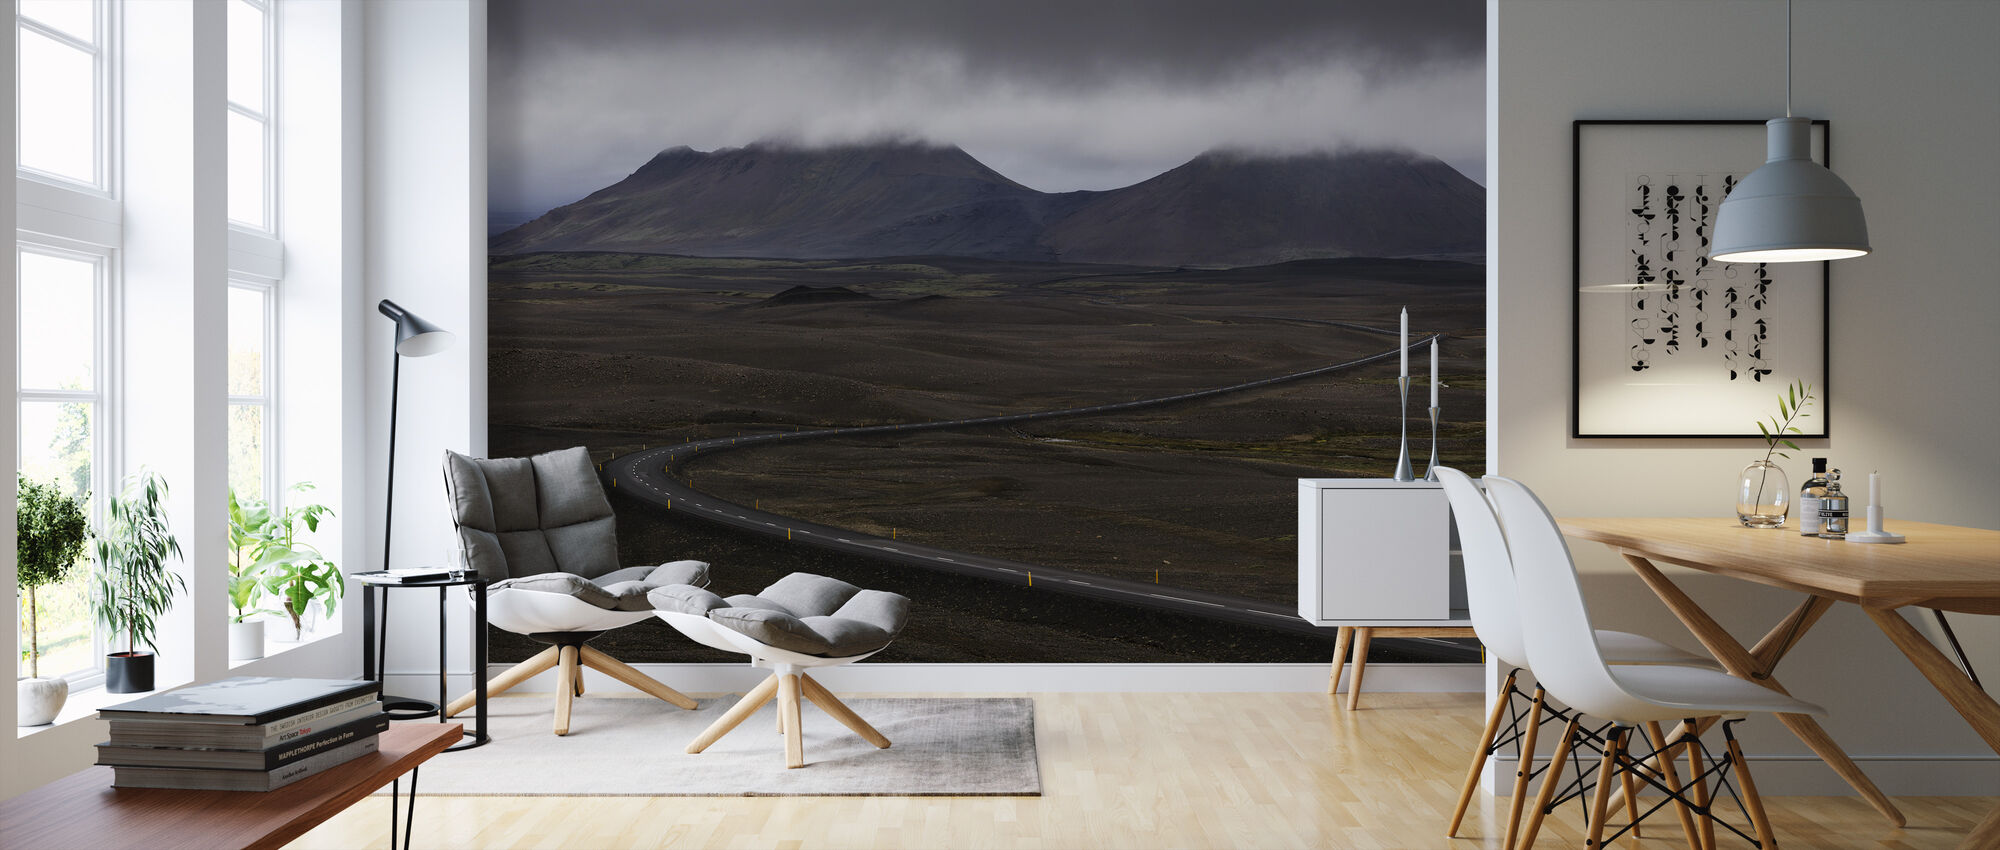 Námafjall, Iceland - Wallpaper - Living Room